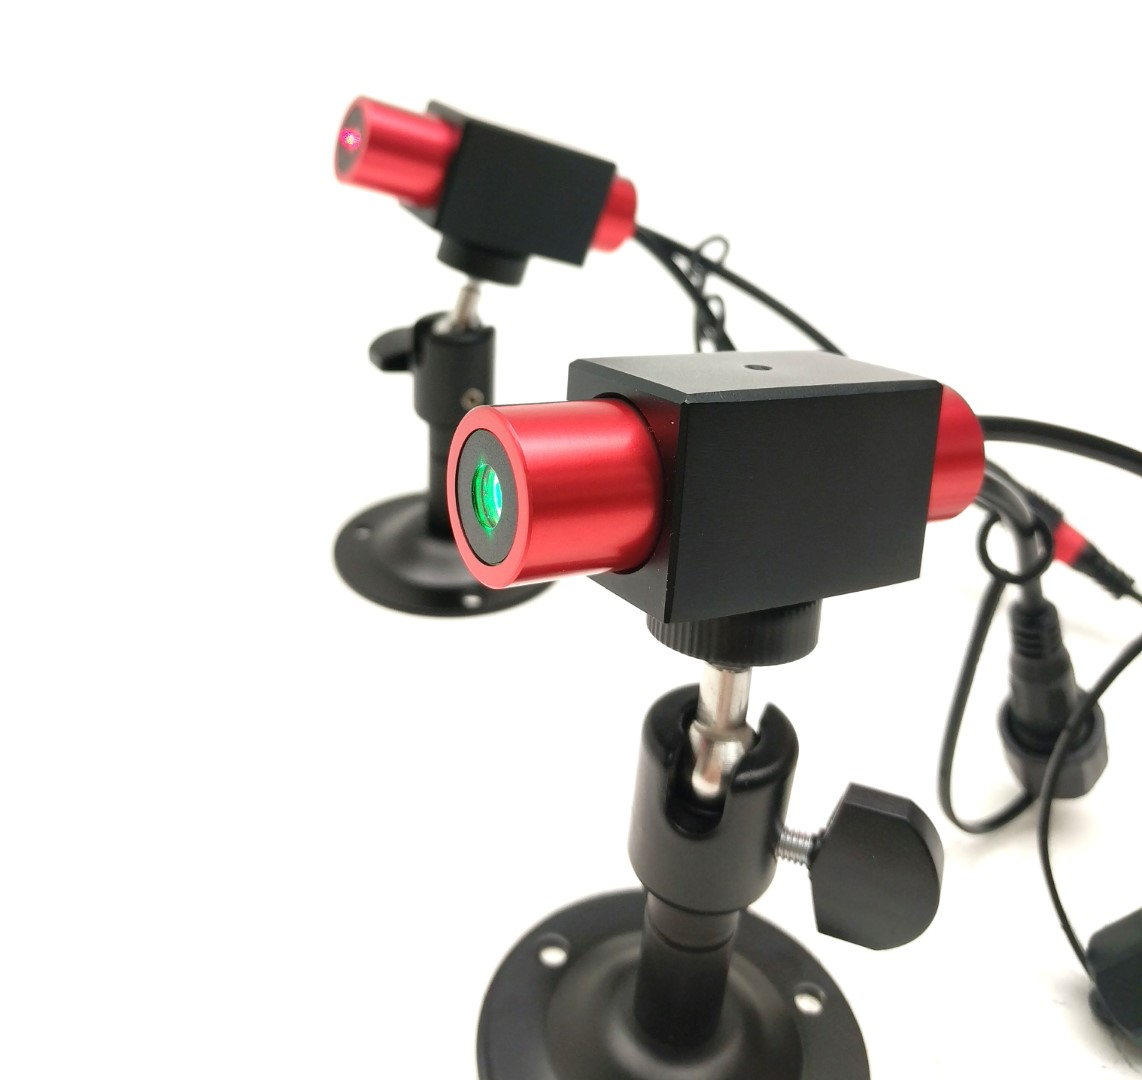 20 mW 520 nm Green Premium Structured Reticle of Dots Laser, 5° fan angle, adjustable focus, TTL+, Sealed IP67